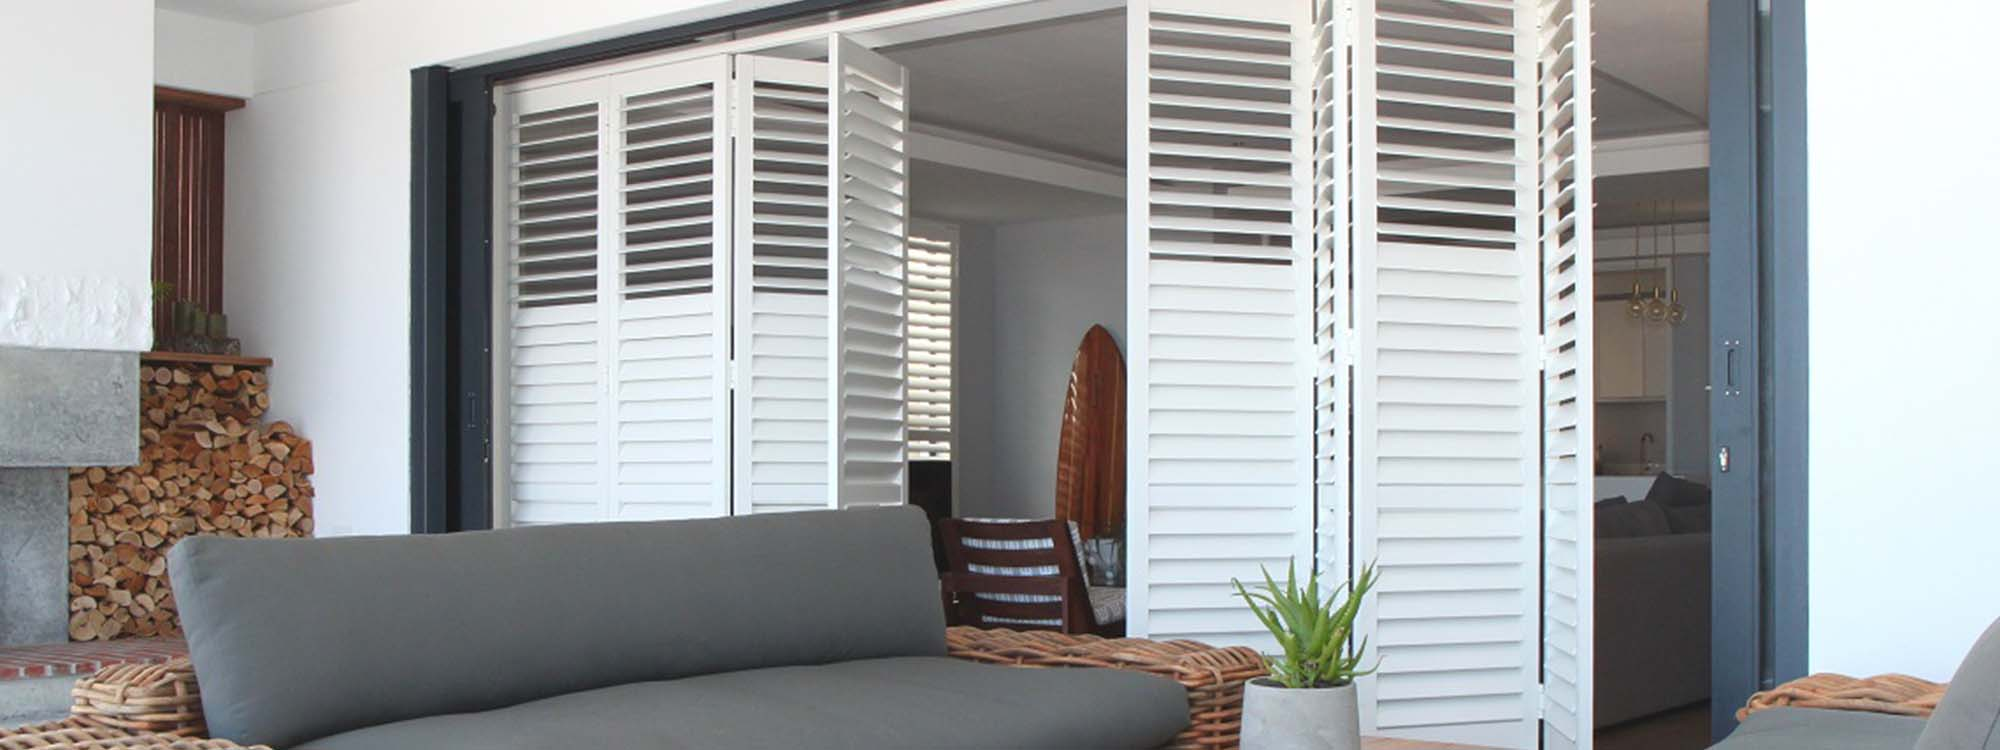 Security-shutters-patio-exterior